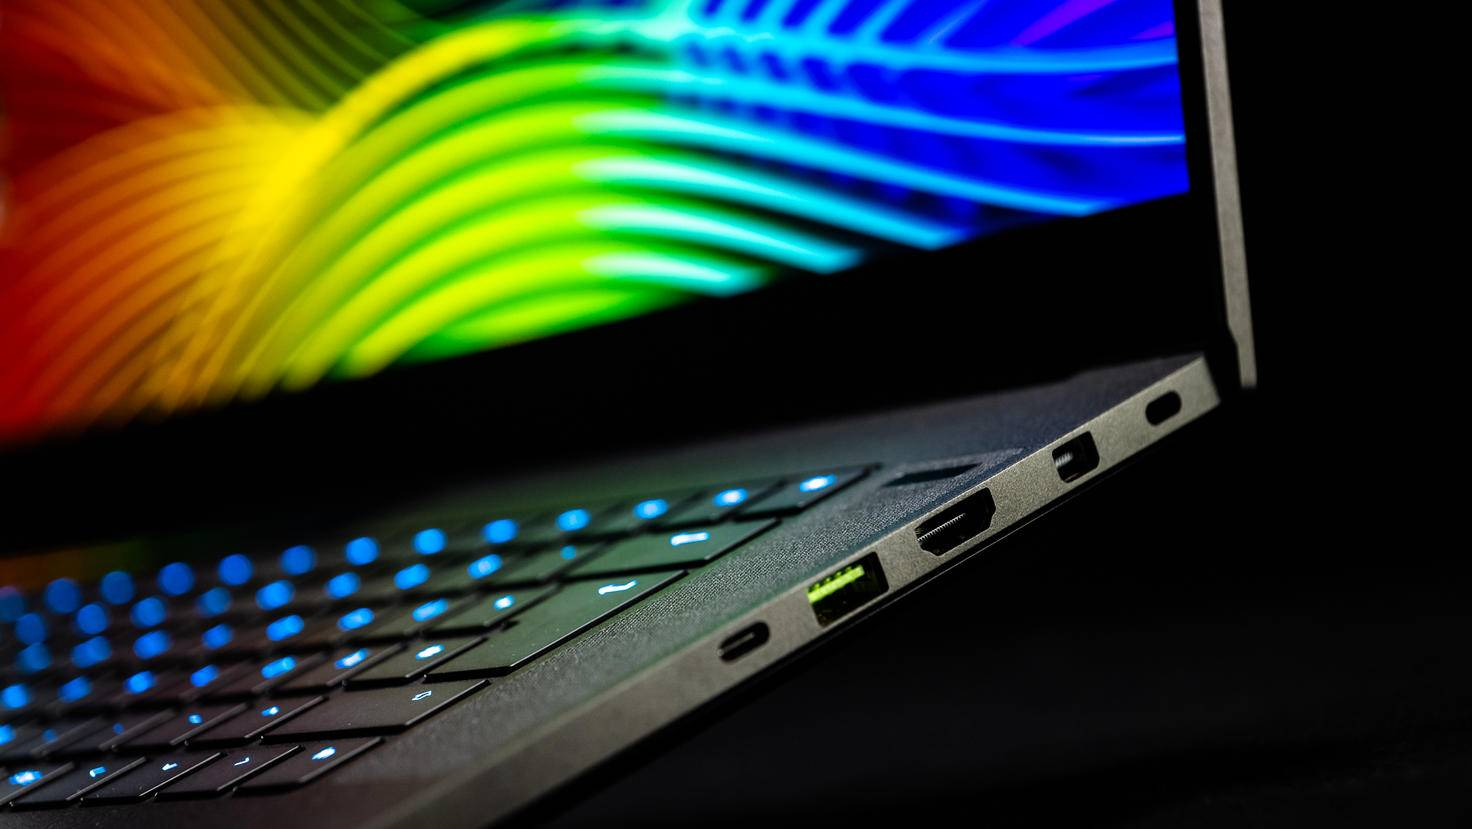 razer-blade-15-profi-advanced-2019-3